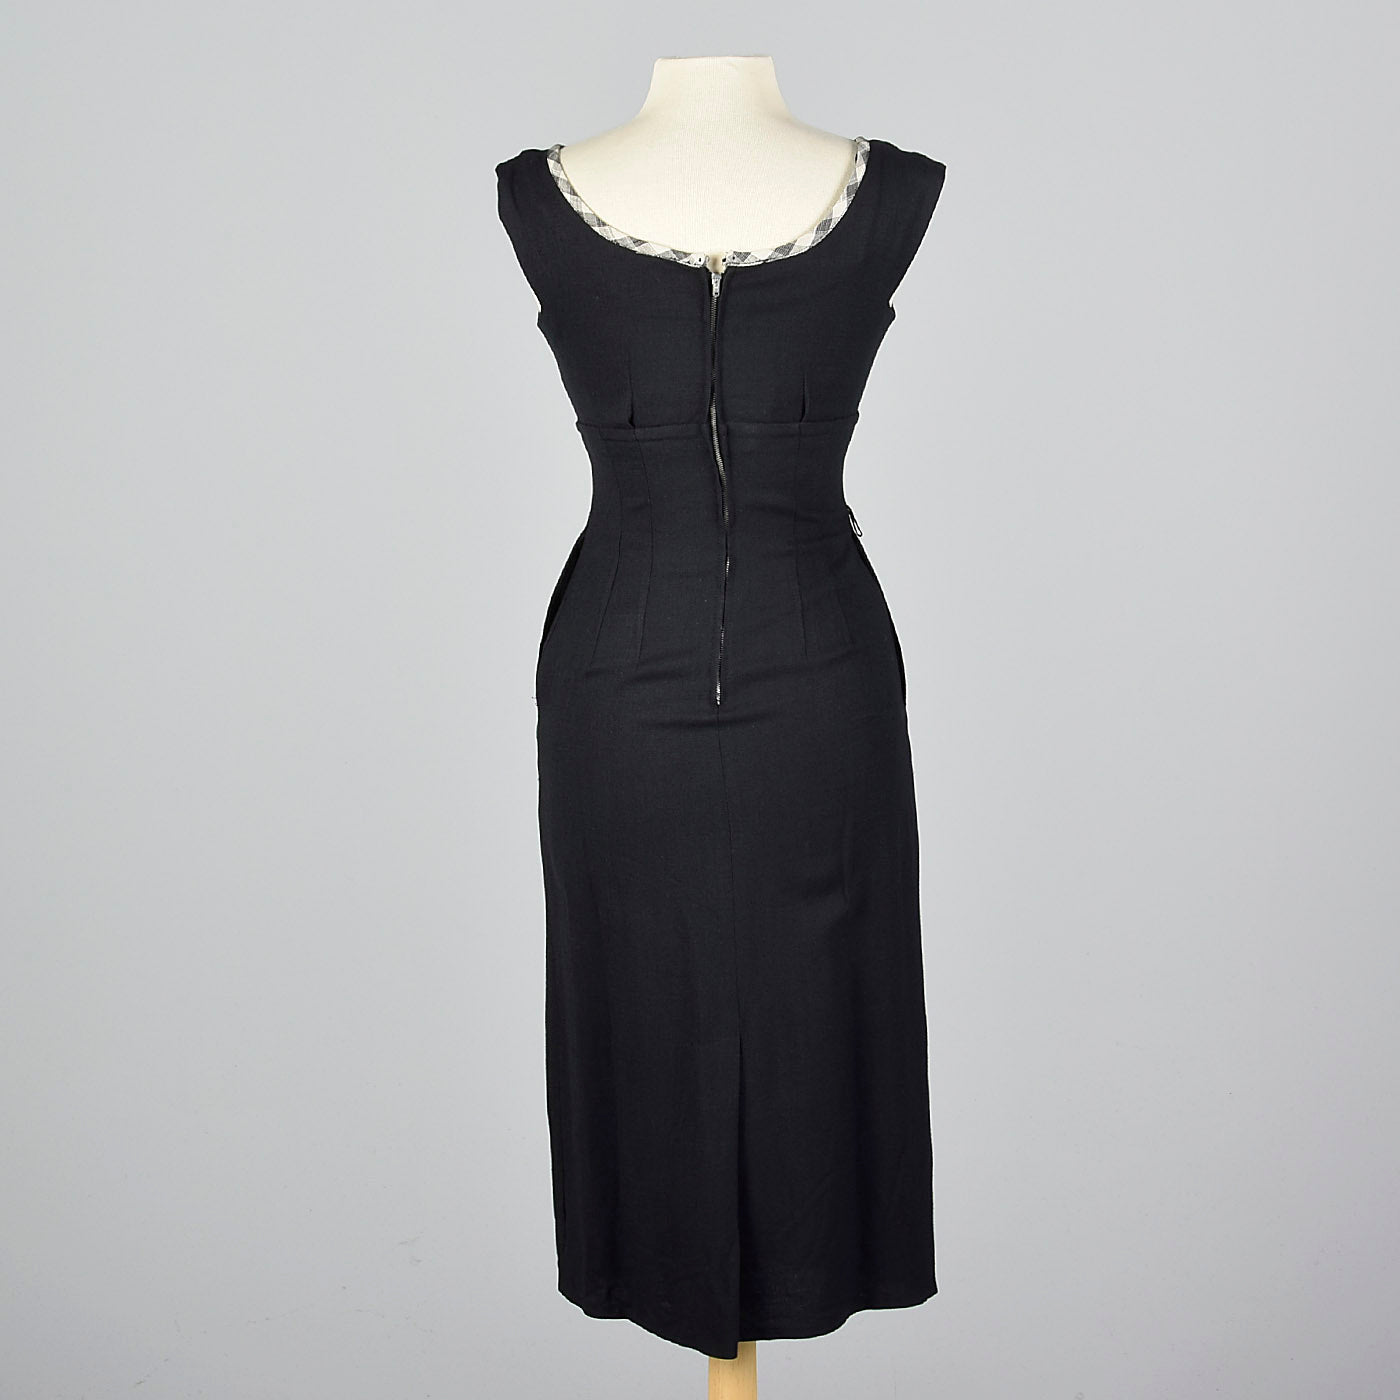 1950s Black Wiggle Dress with Gingham Trim and Jacket